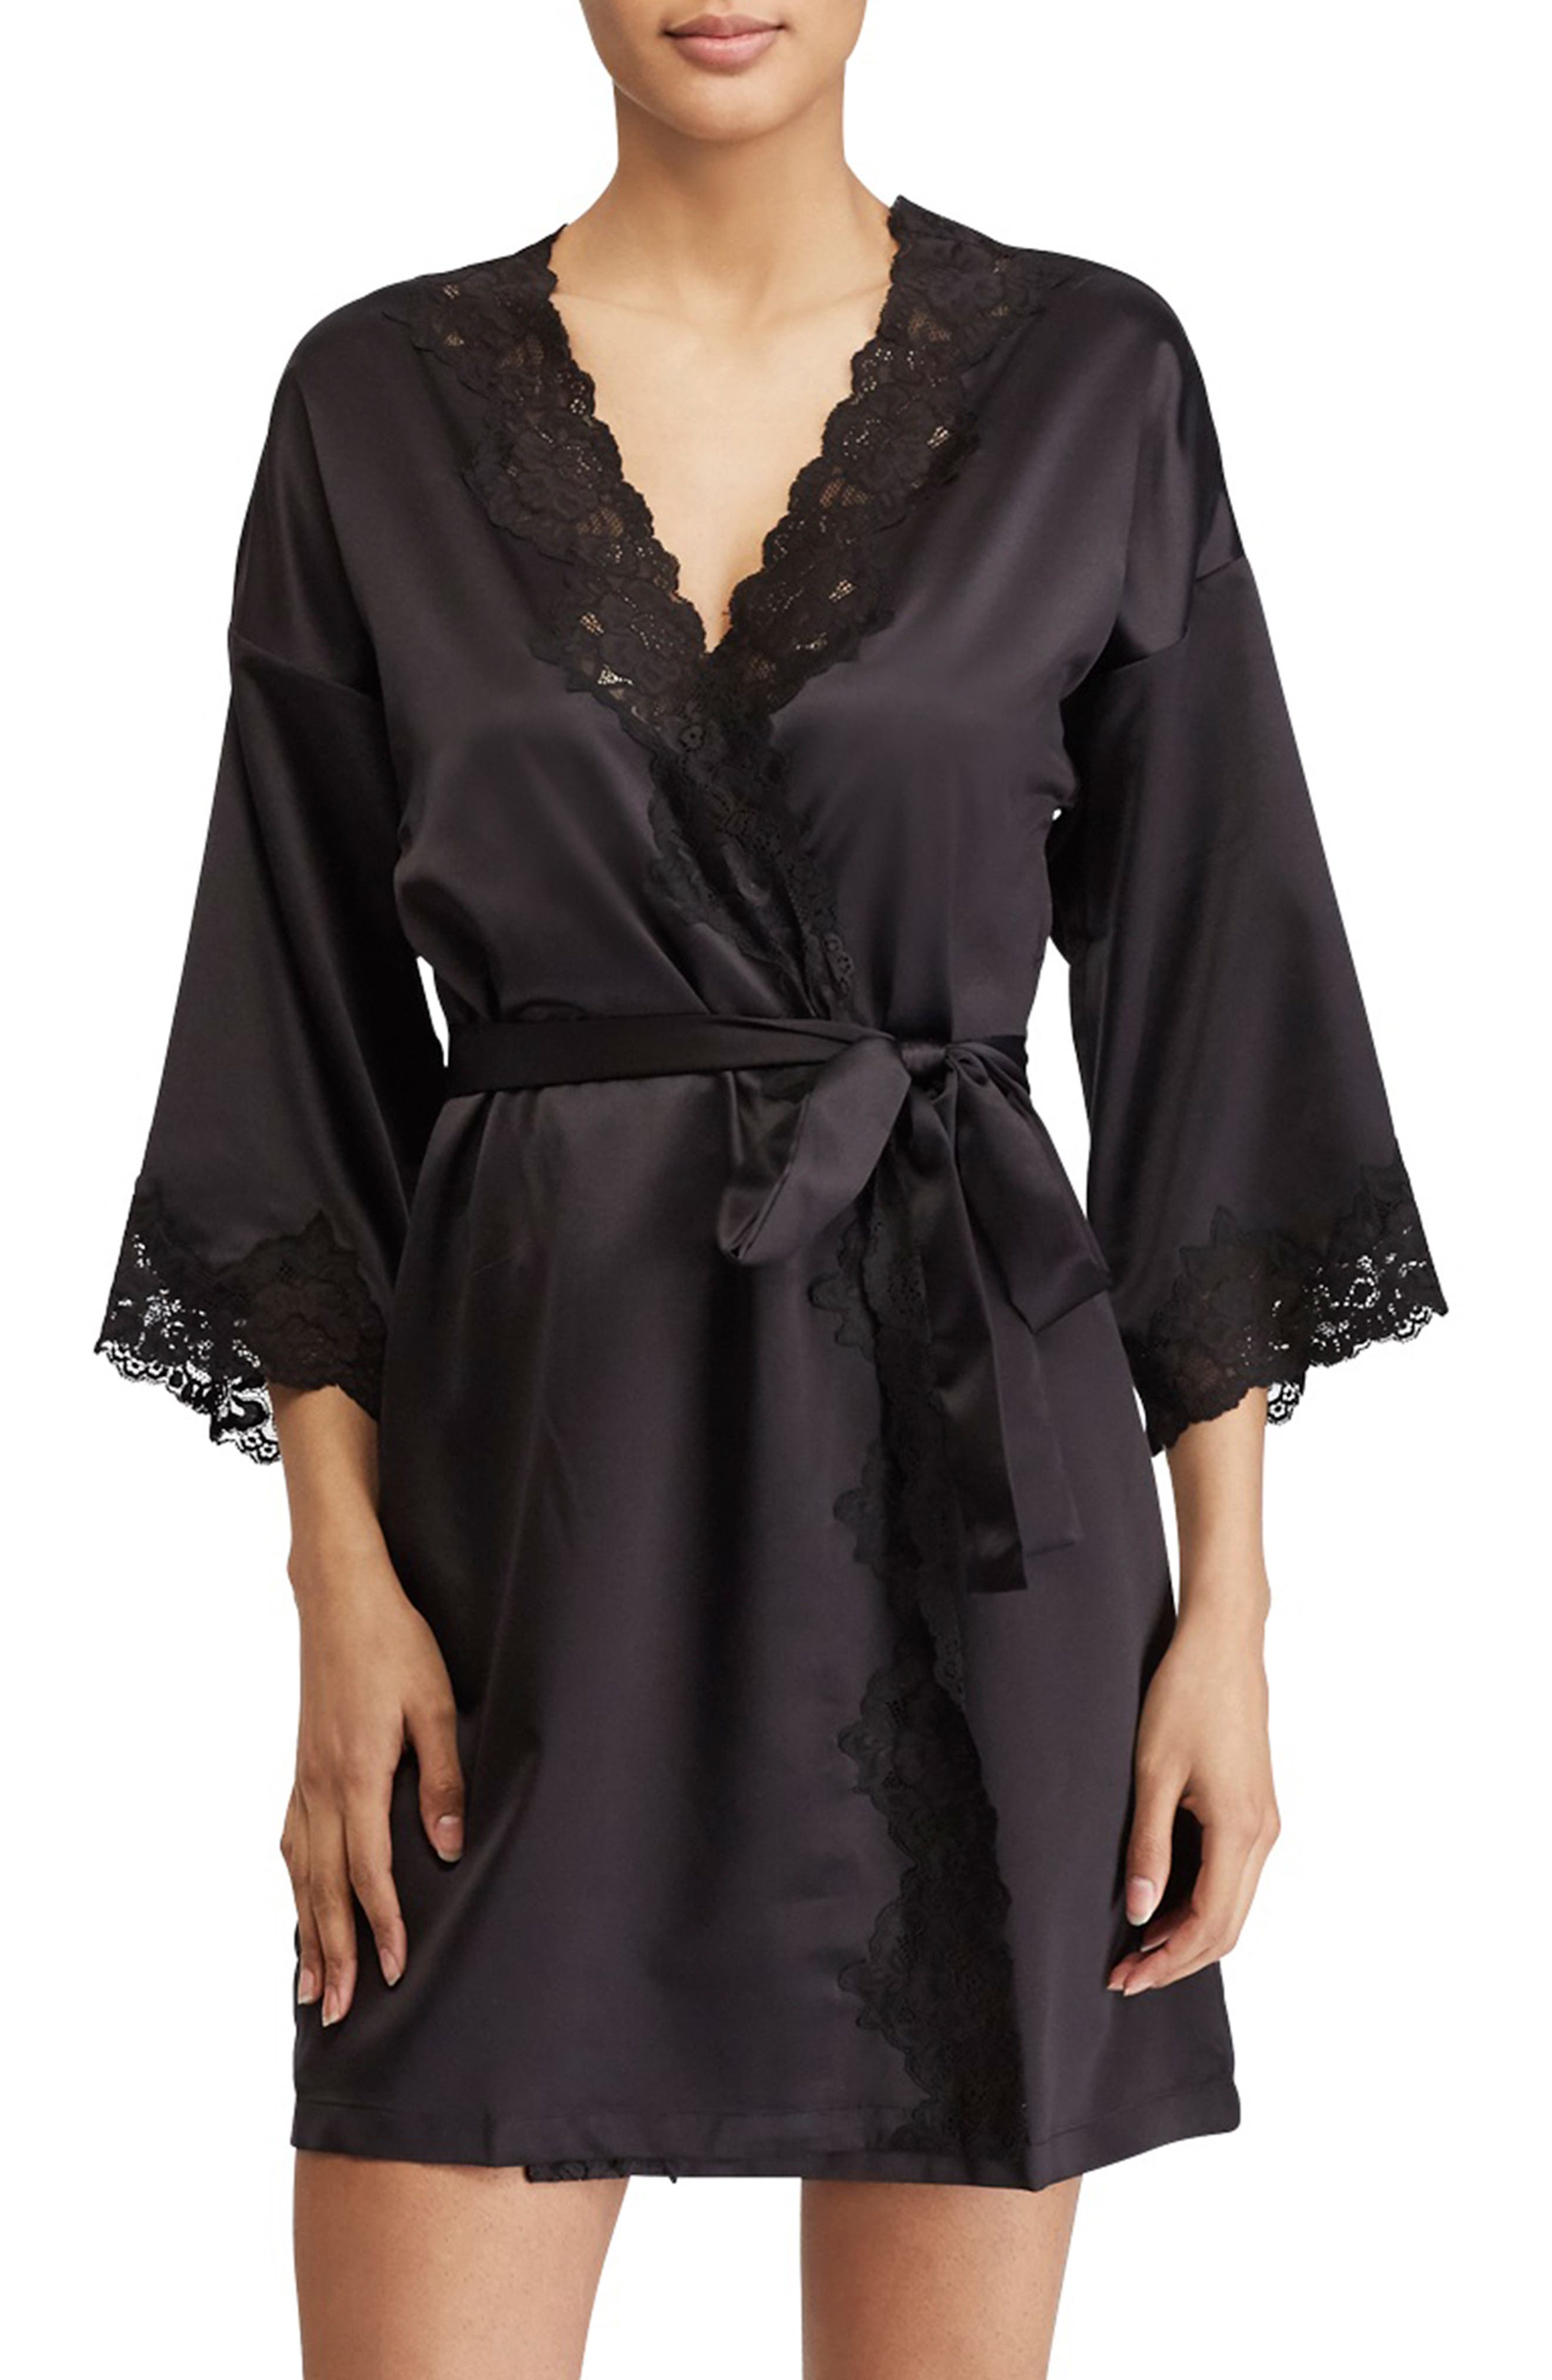 LAUREN RALPH LAUREN Lace Trim Satin Robe, Main, color, BLACK